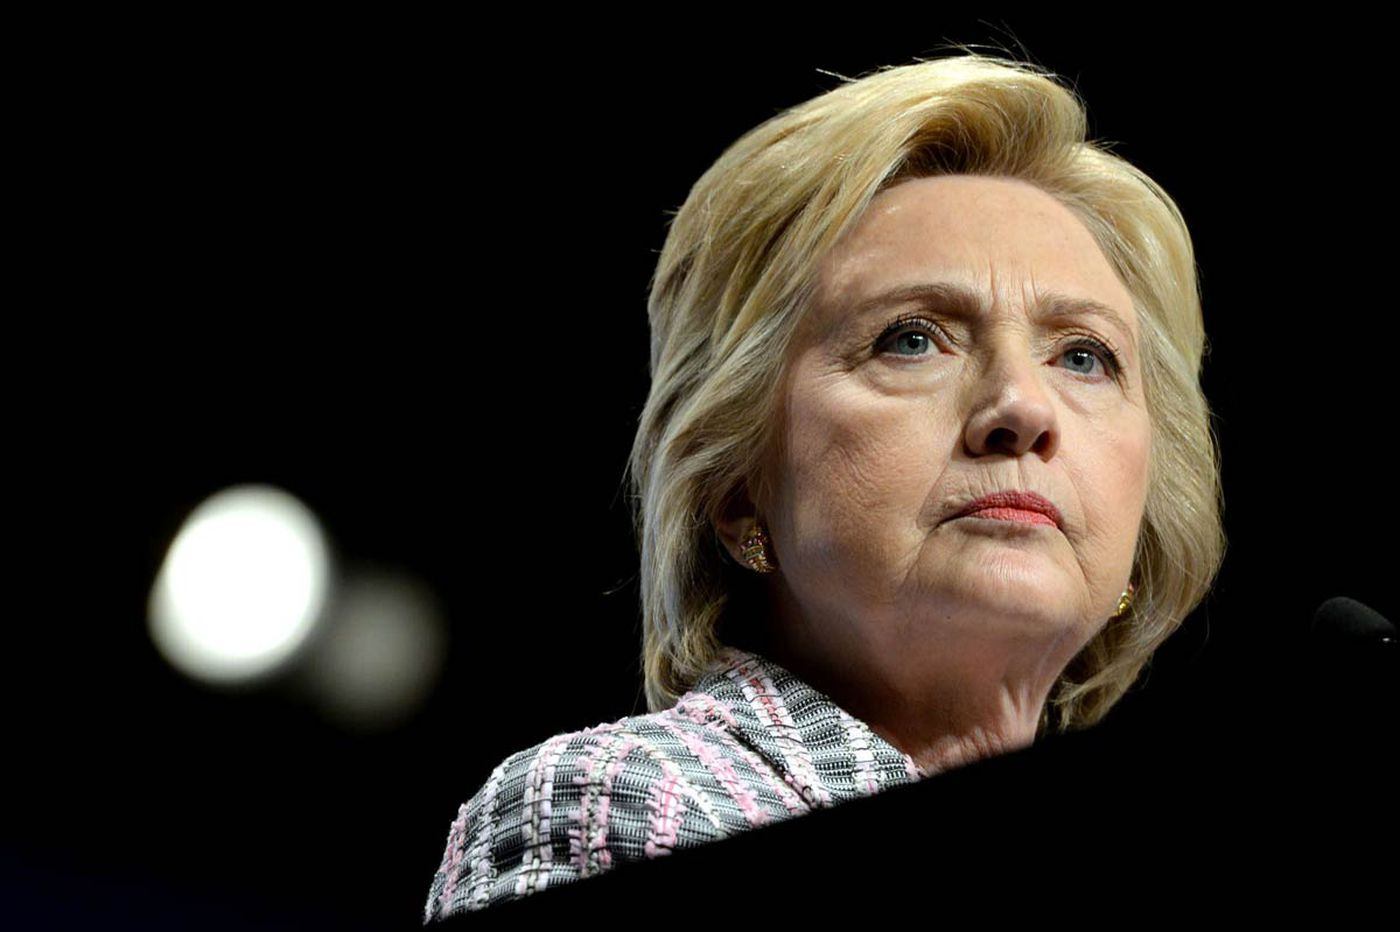 Democrats' convention goal: Shift voters' thinking about Hillary Clinton